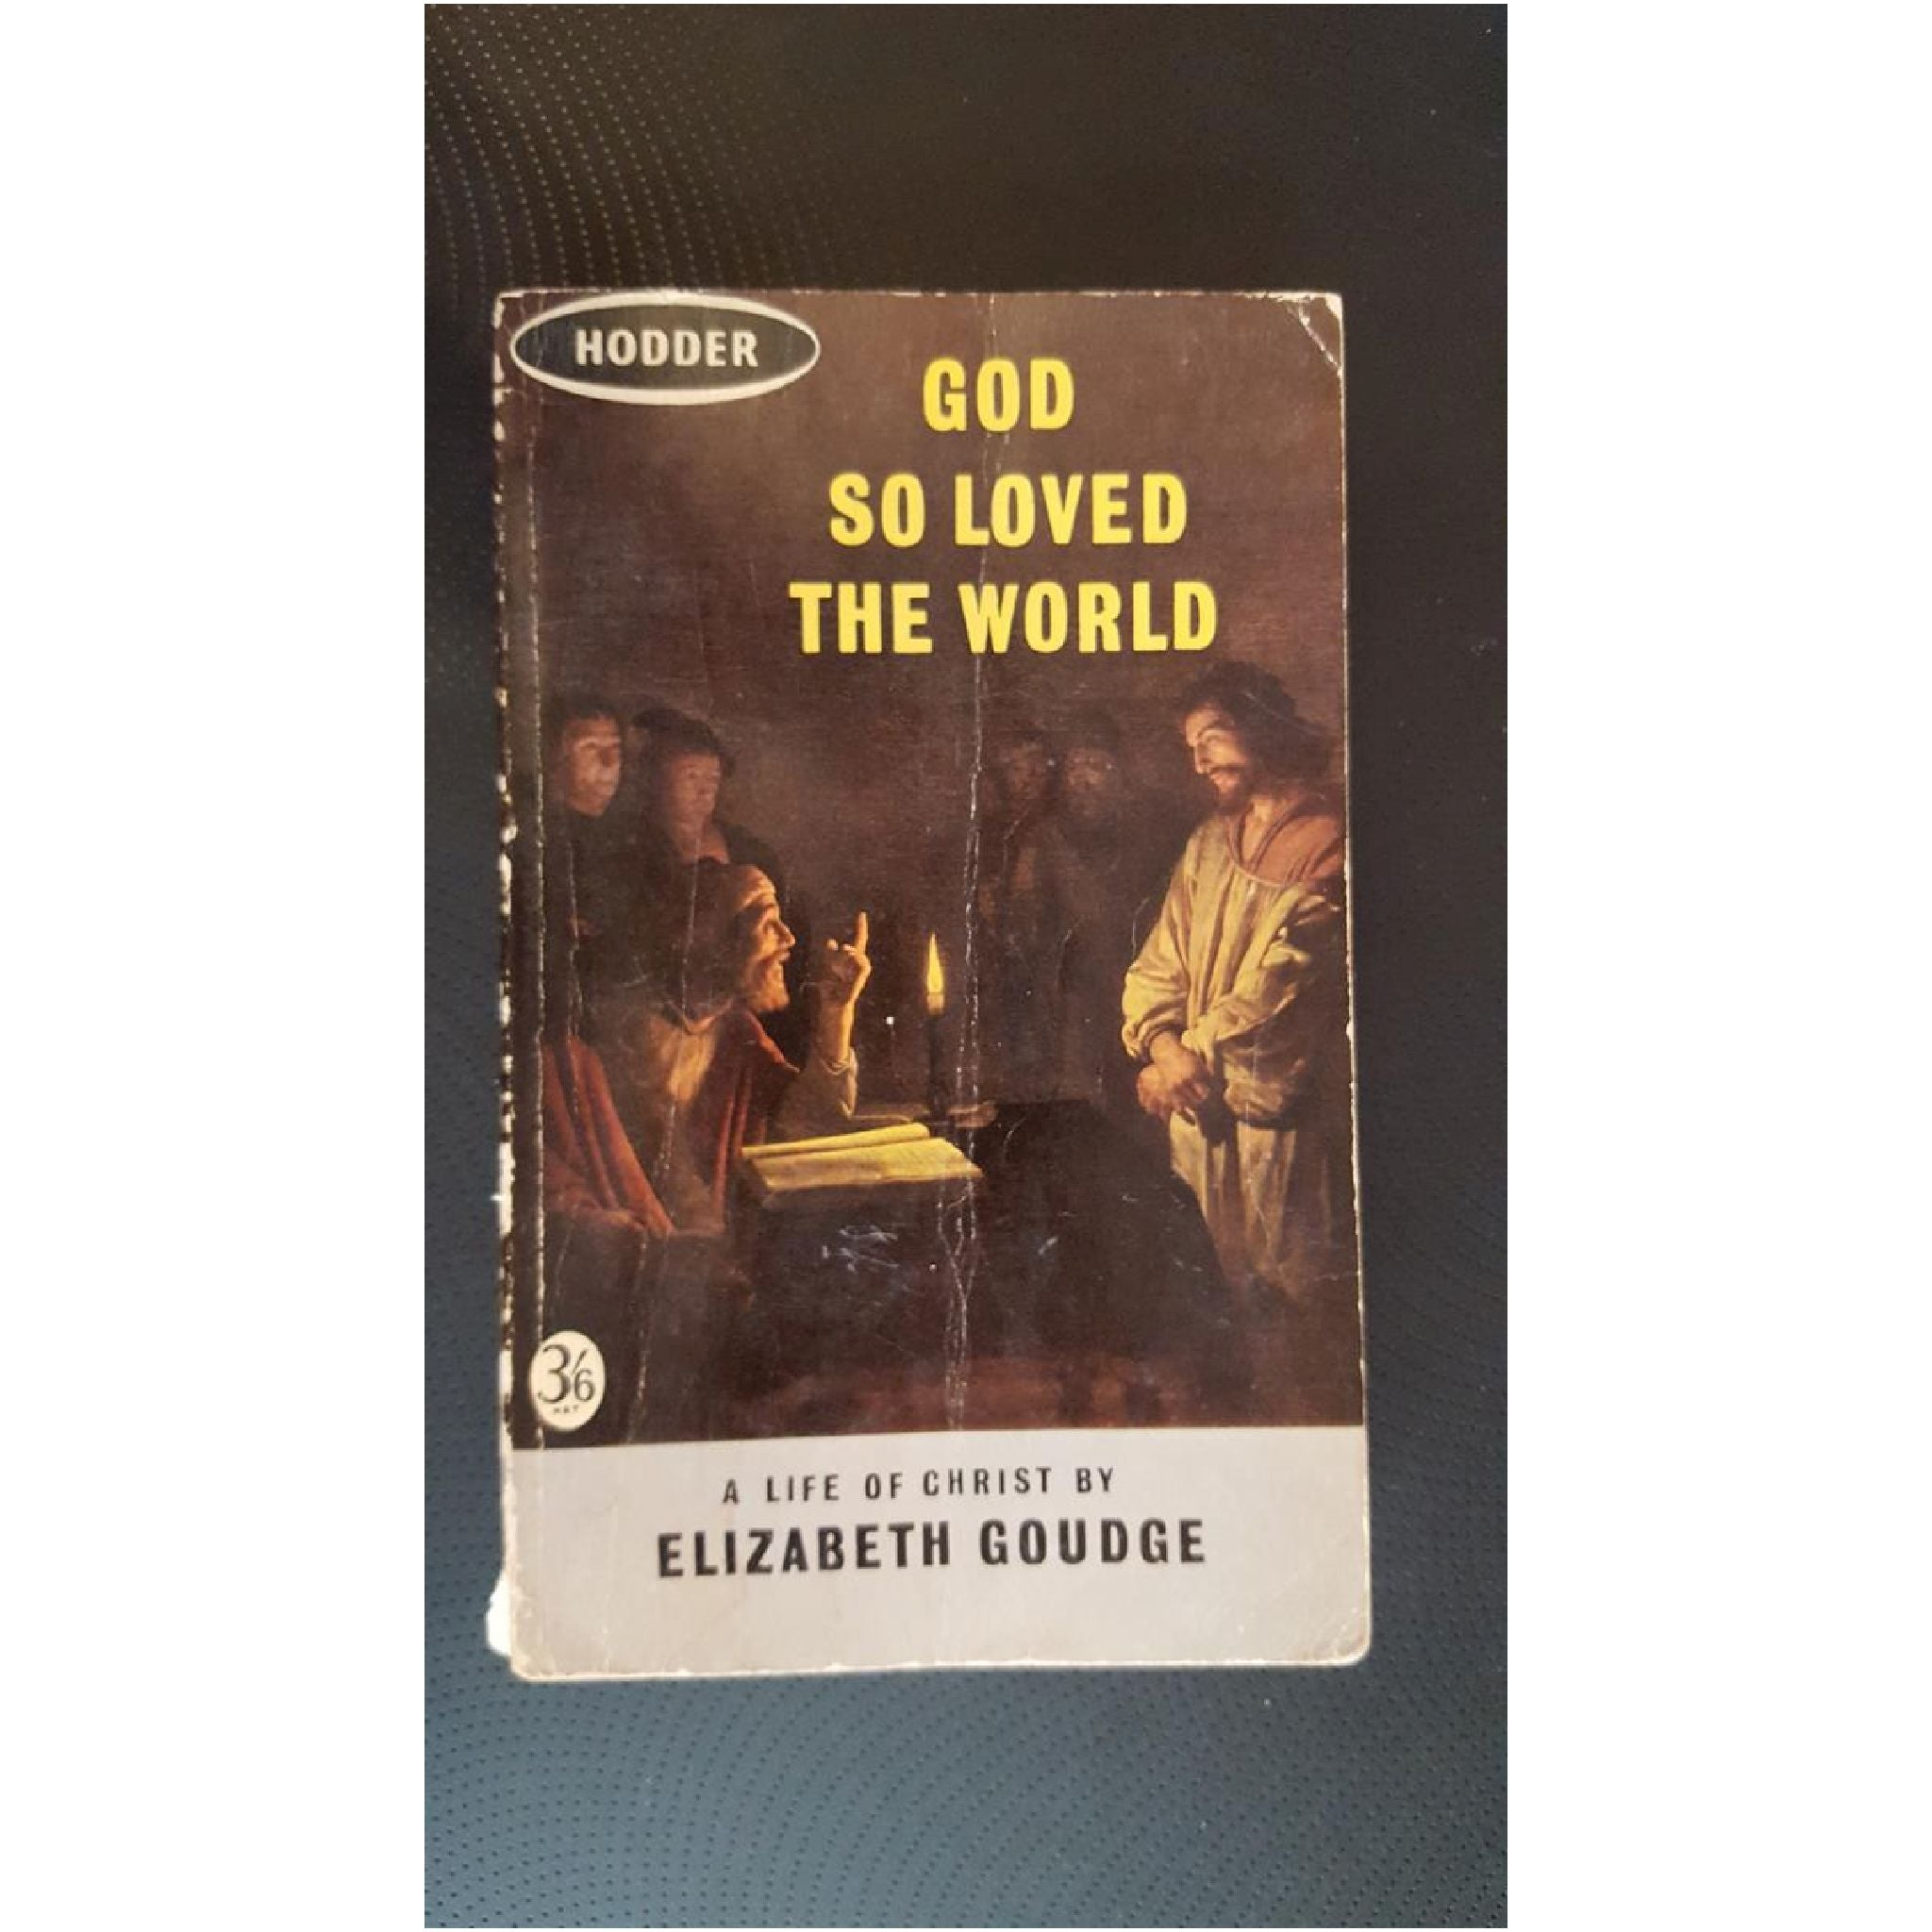 God so Loved the World by Elizabeth Goudge